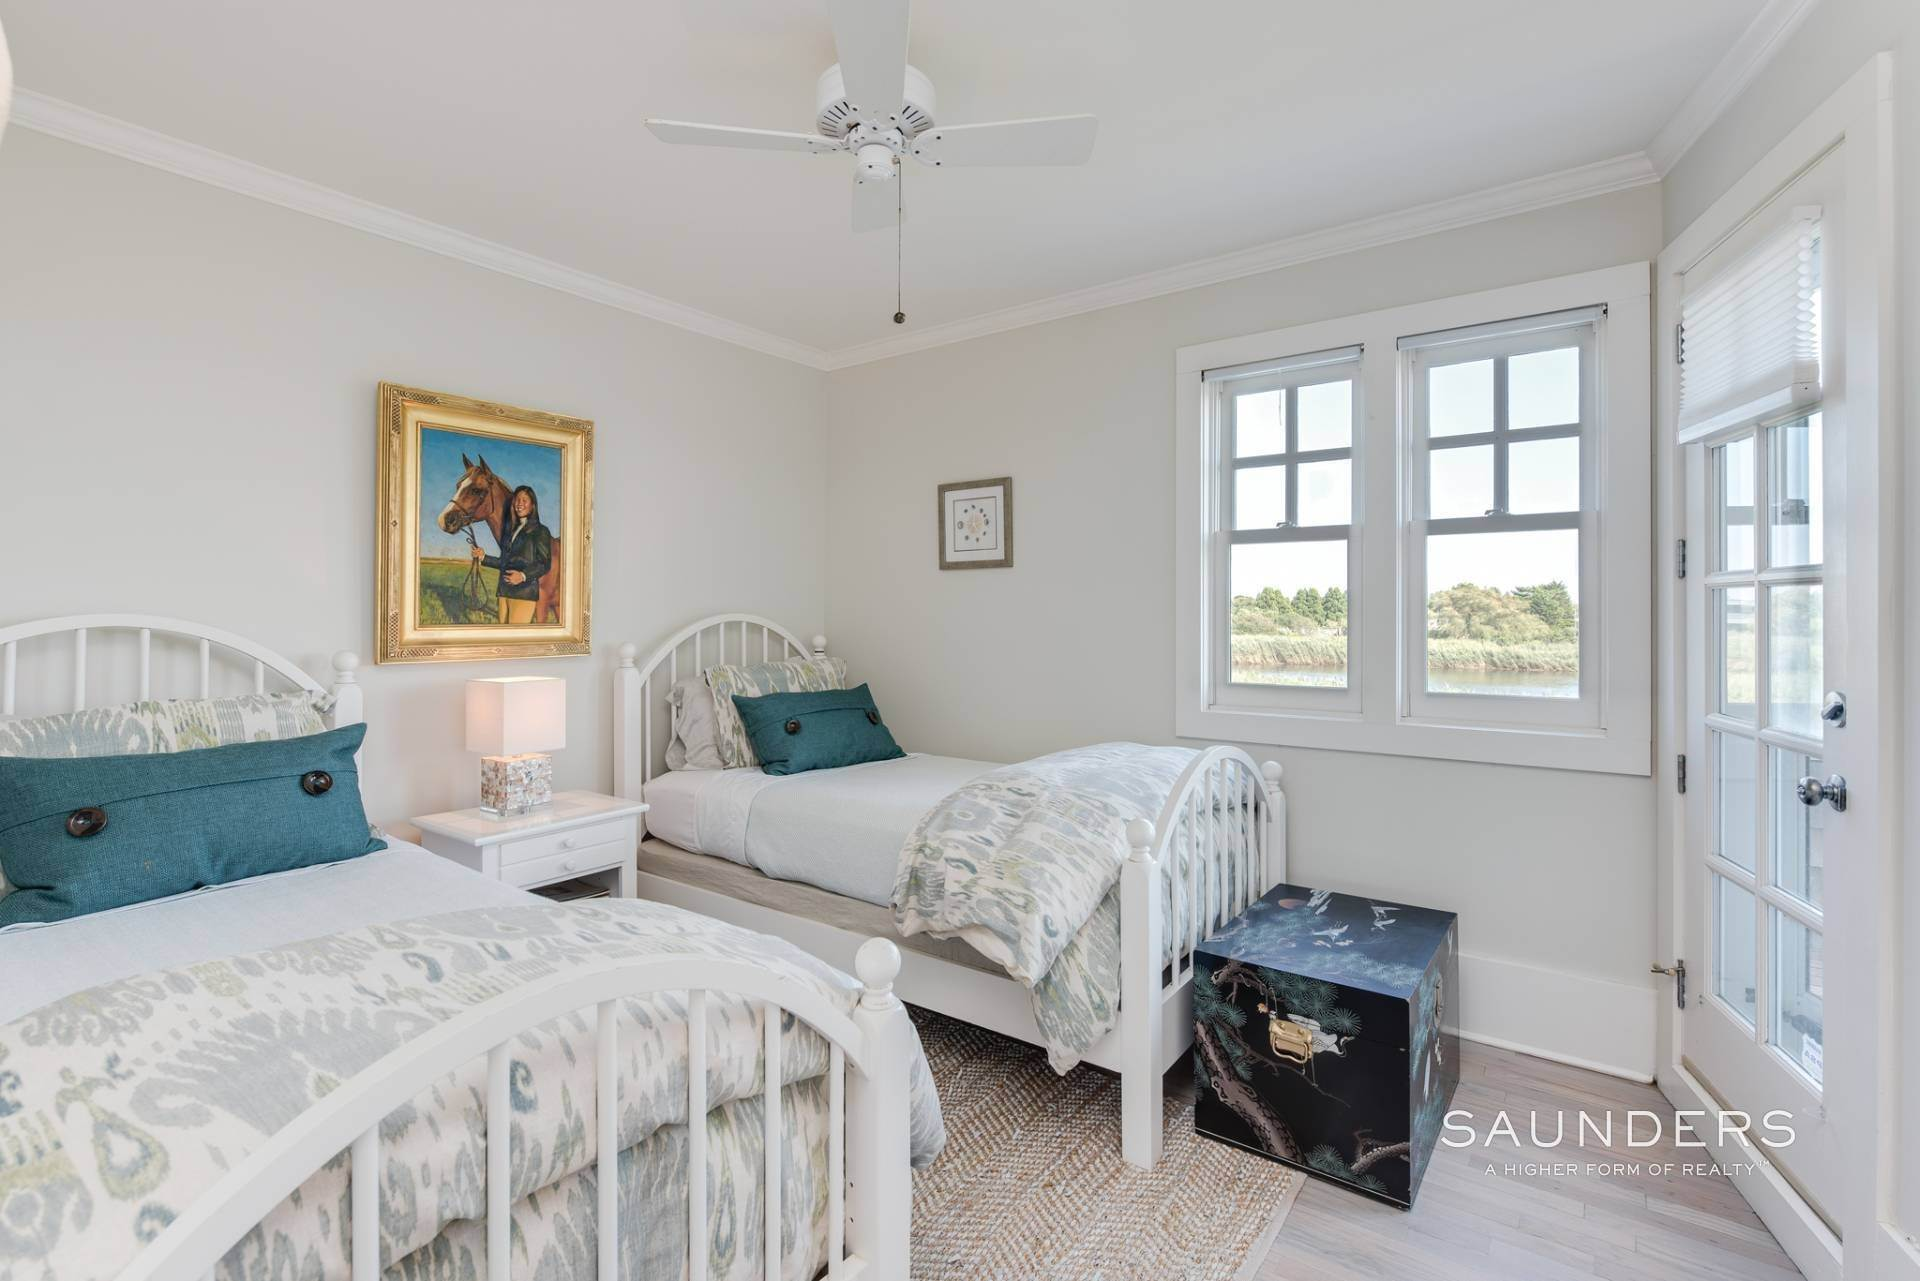 16. Single Family Homes for Sale at Bridgehampton South Waterfront With Dock & Ocean View 87 Rose Way, Bridgehampton, Southampton Town, NY 11932